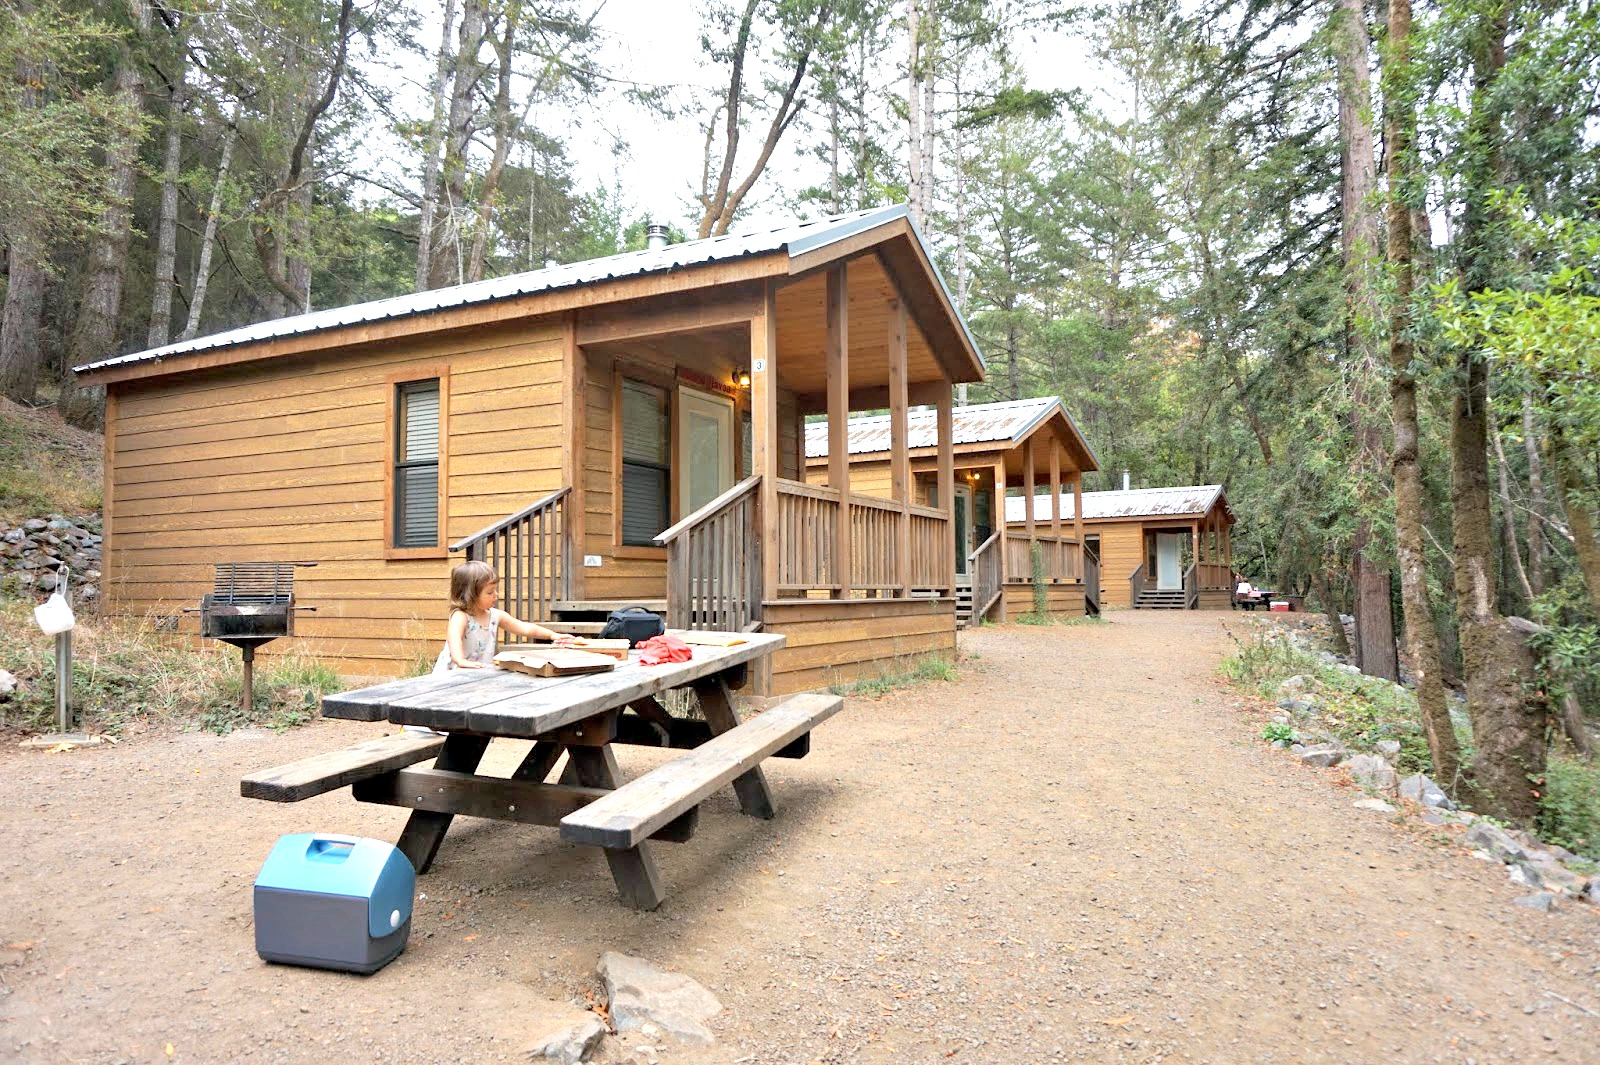 The Cabins, Which Were Built In 2012, Come Equipped With Electricity,  Platform Bunk Beds With Mattresses, Wood Floors, Covered Porches, And A  Small Electric ...